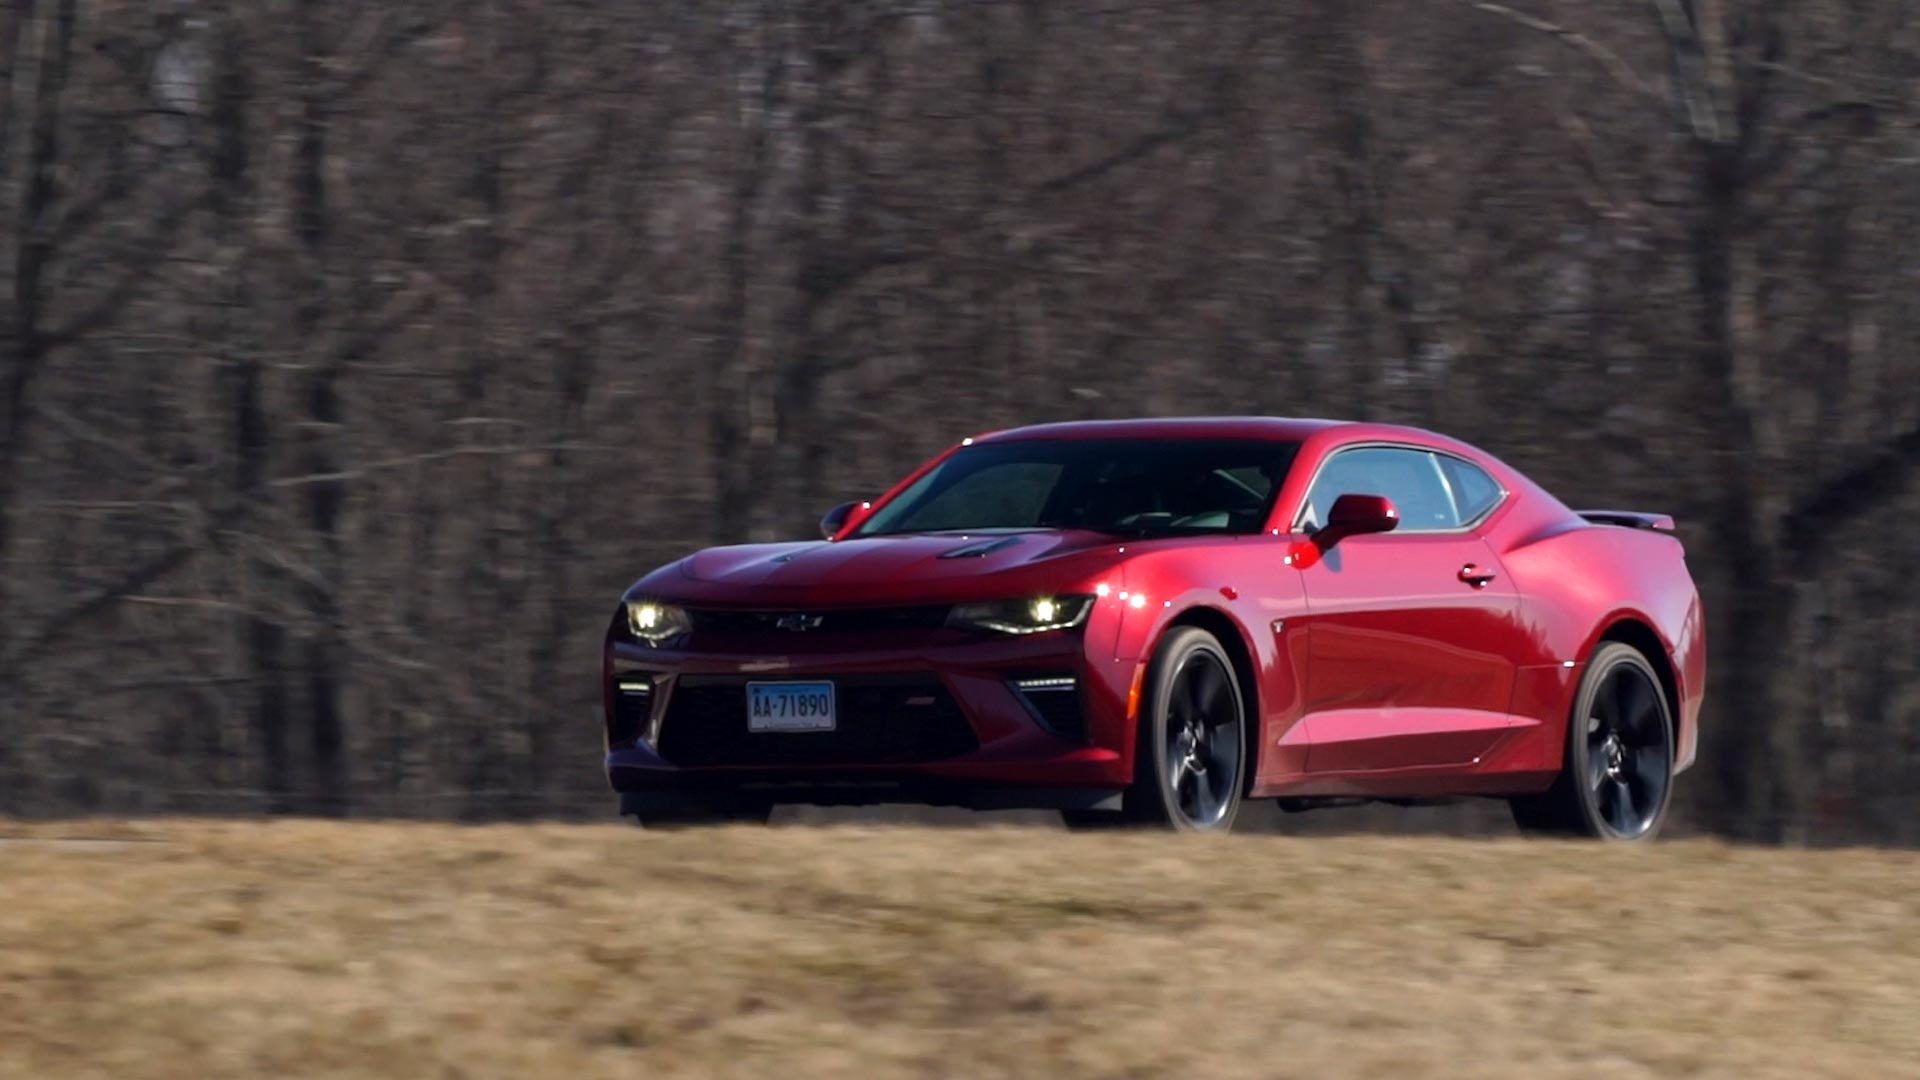 2016 chevrolet camaro review - consumer reports